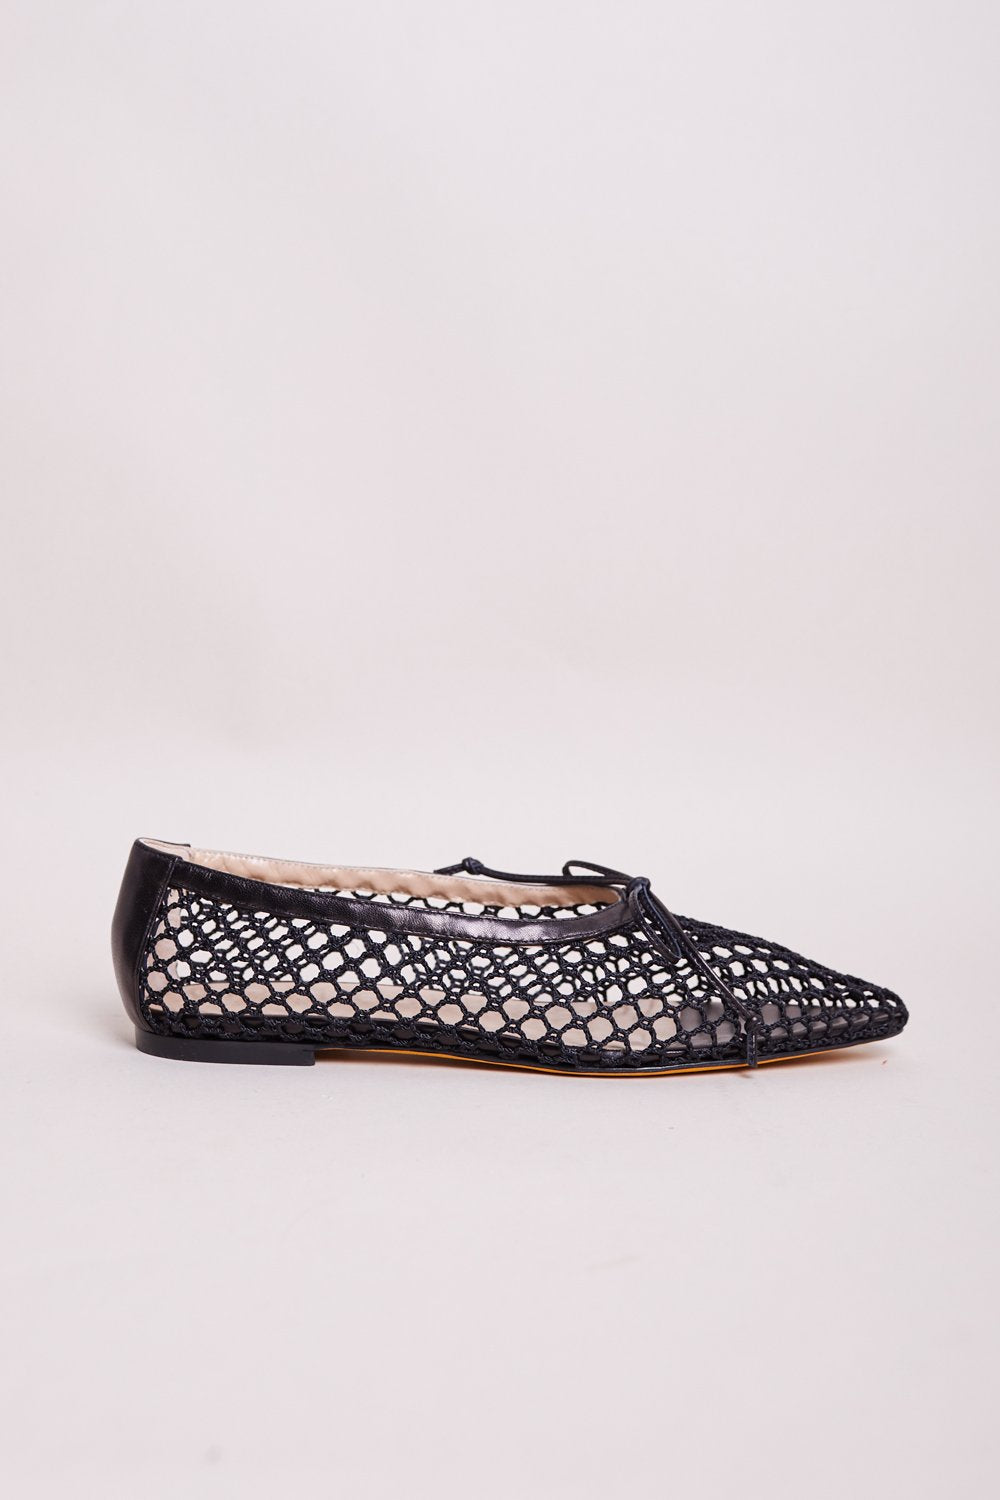 Maryam Nassir Zadeh Patio loafer in Black - Vert & Vogue